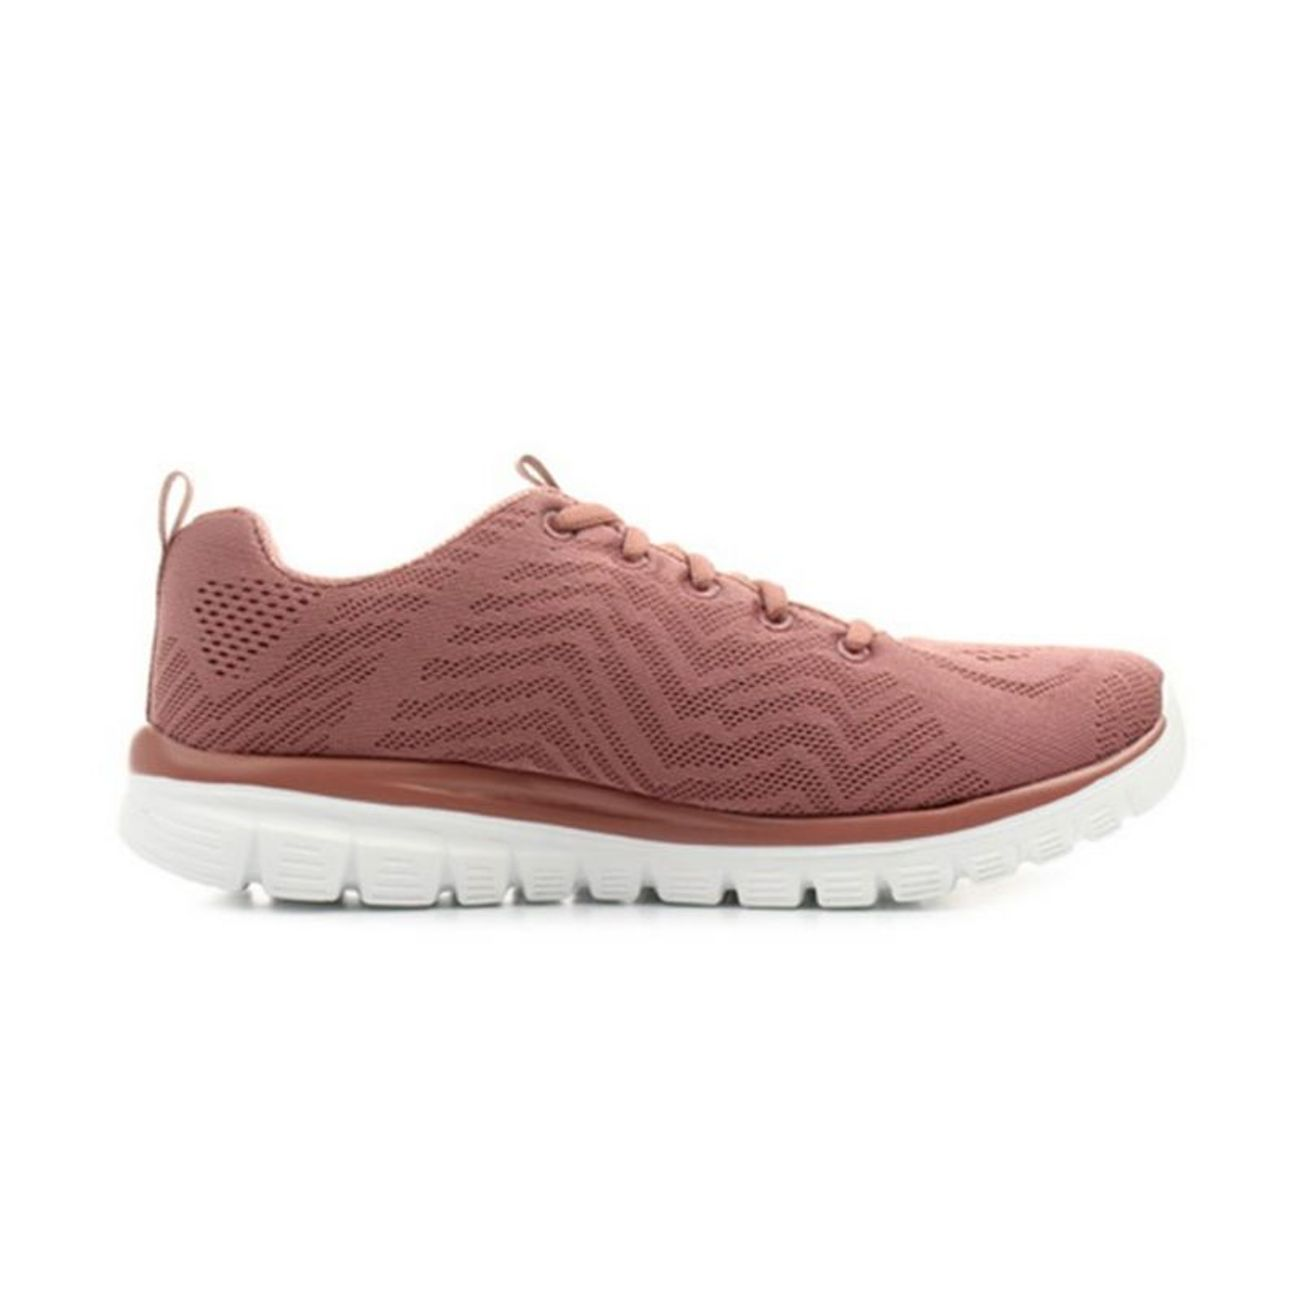 Graceful Connected Padel Skechers Get Rosa Mujer Adulte bgyYf67